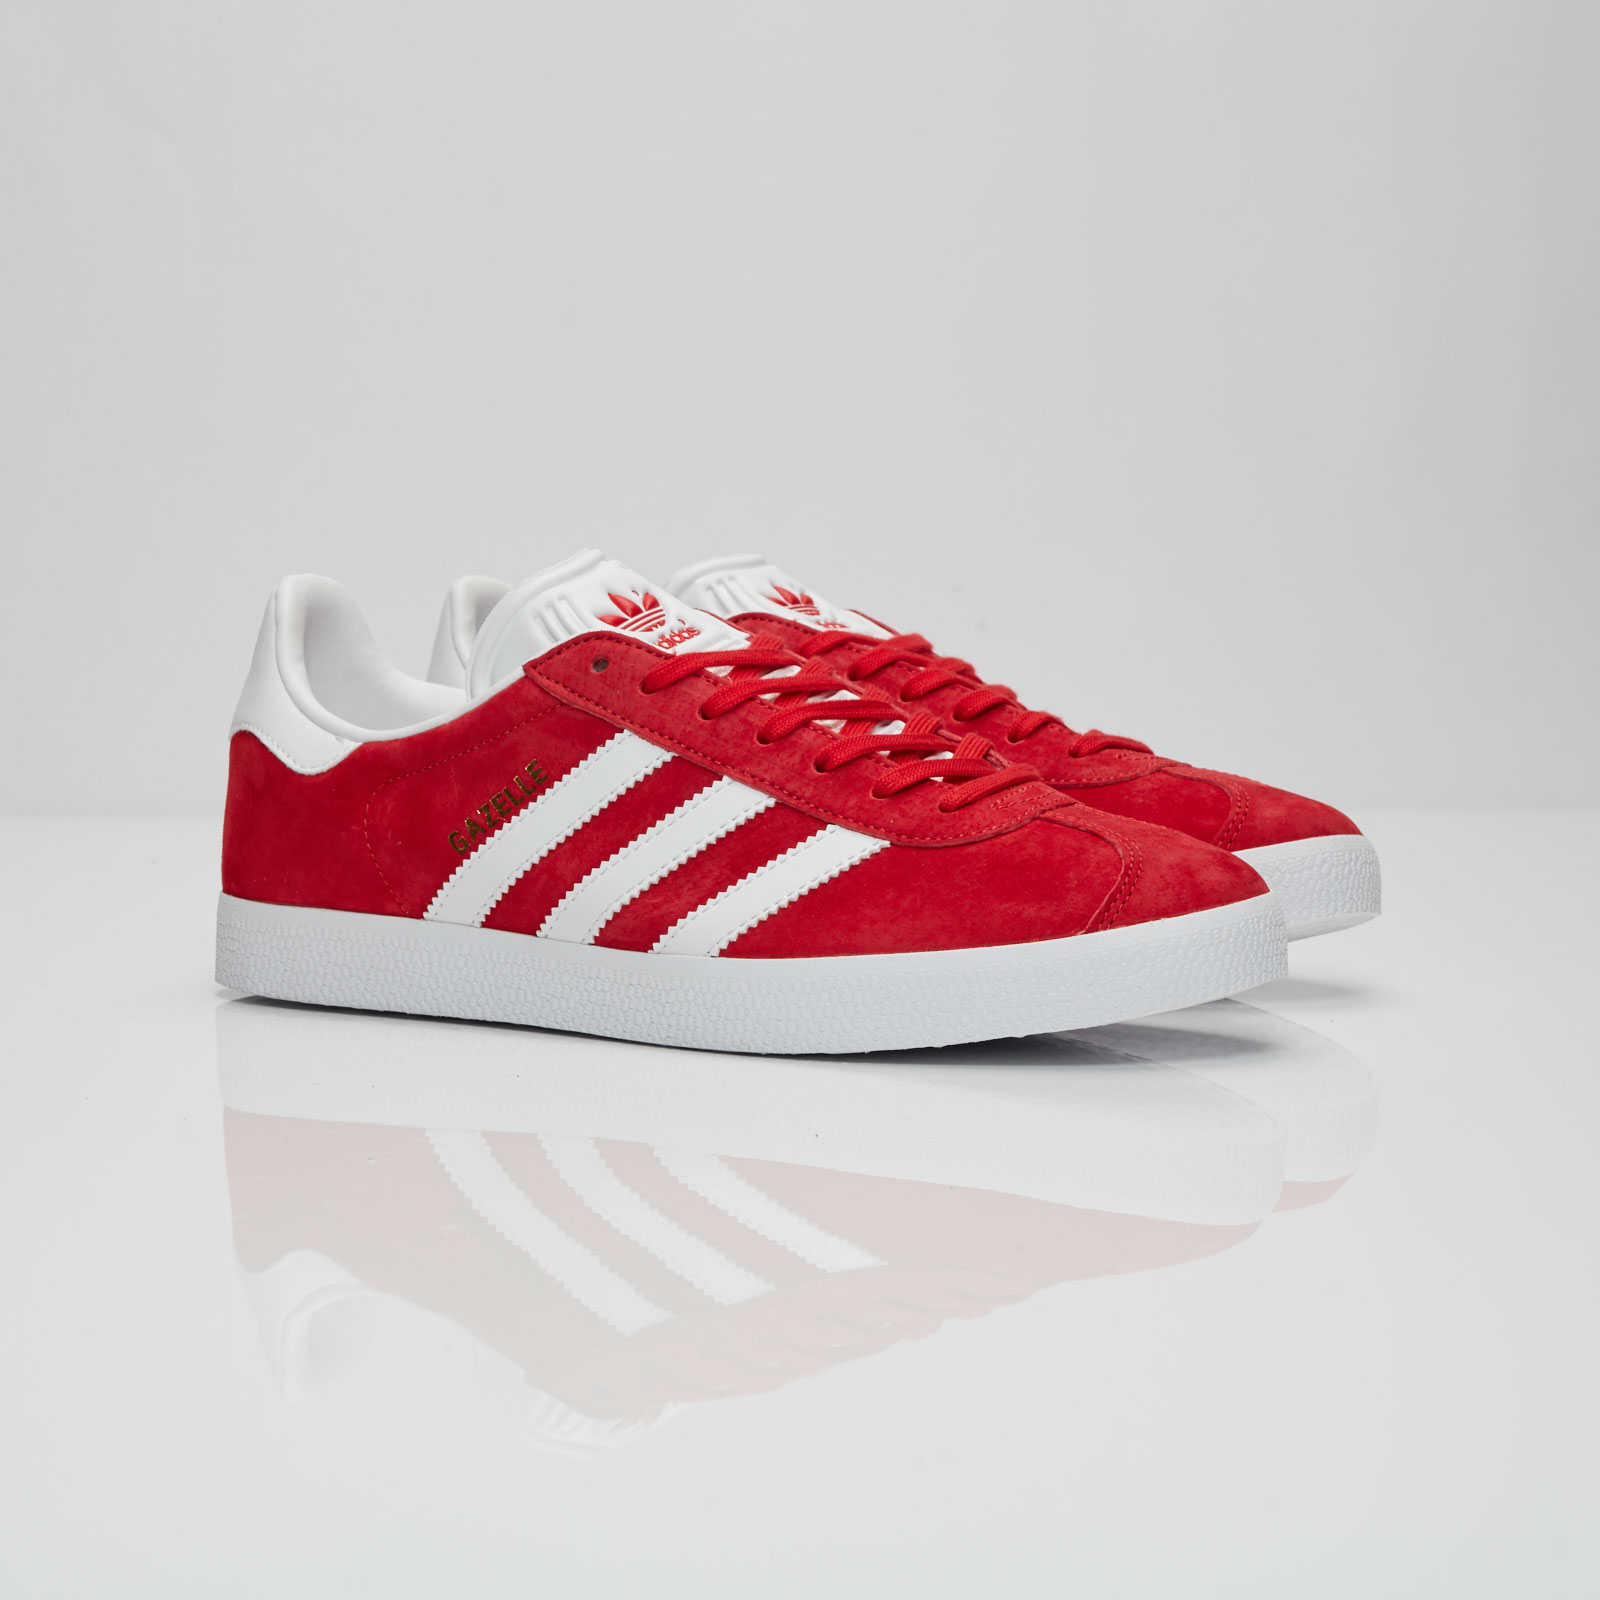 low priced d5563 7434b adidas Gazelle - S76228 - Sneakersnstuff  sneakers  streetwe